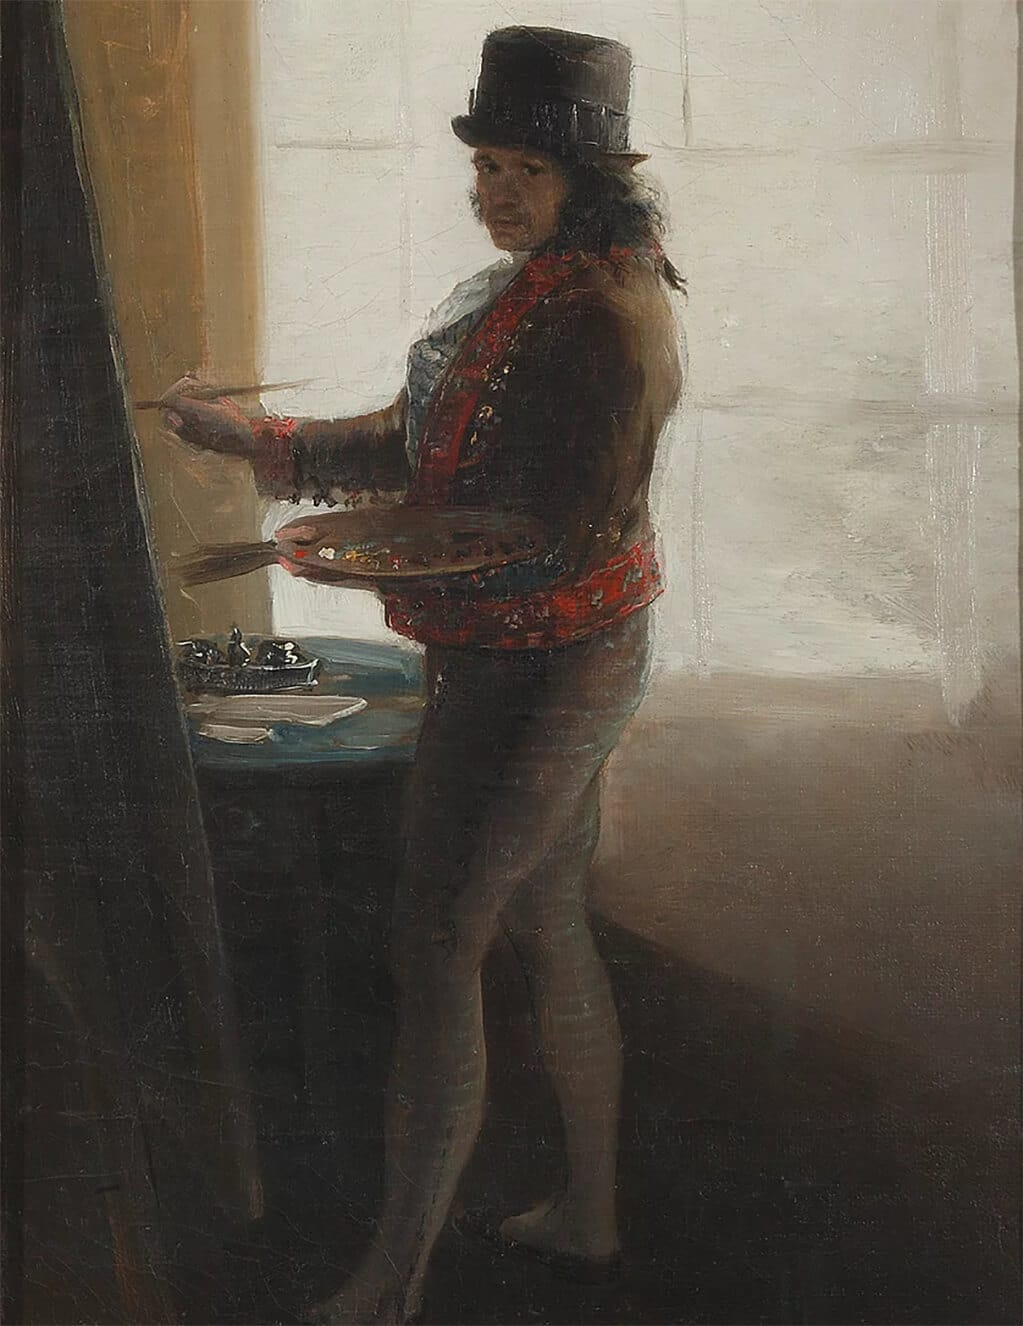 Francisco Goya, Self Portrait before an Easel, 1792-95; Academy of Fine Art, San Fernando, Madrid